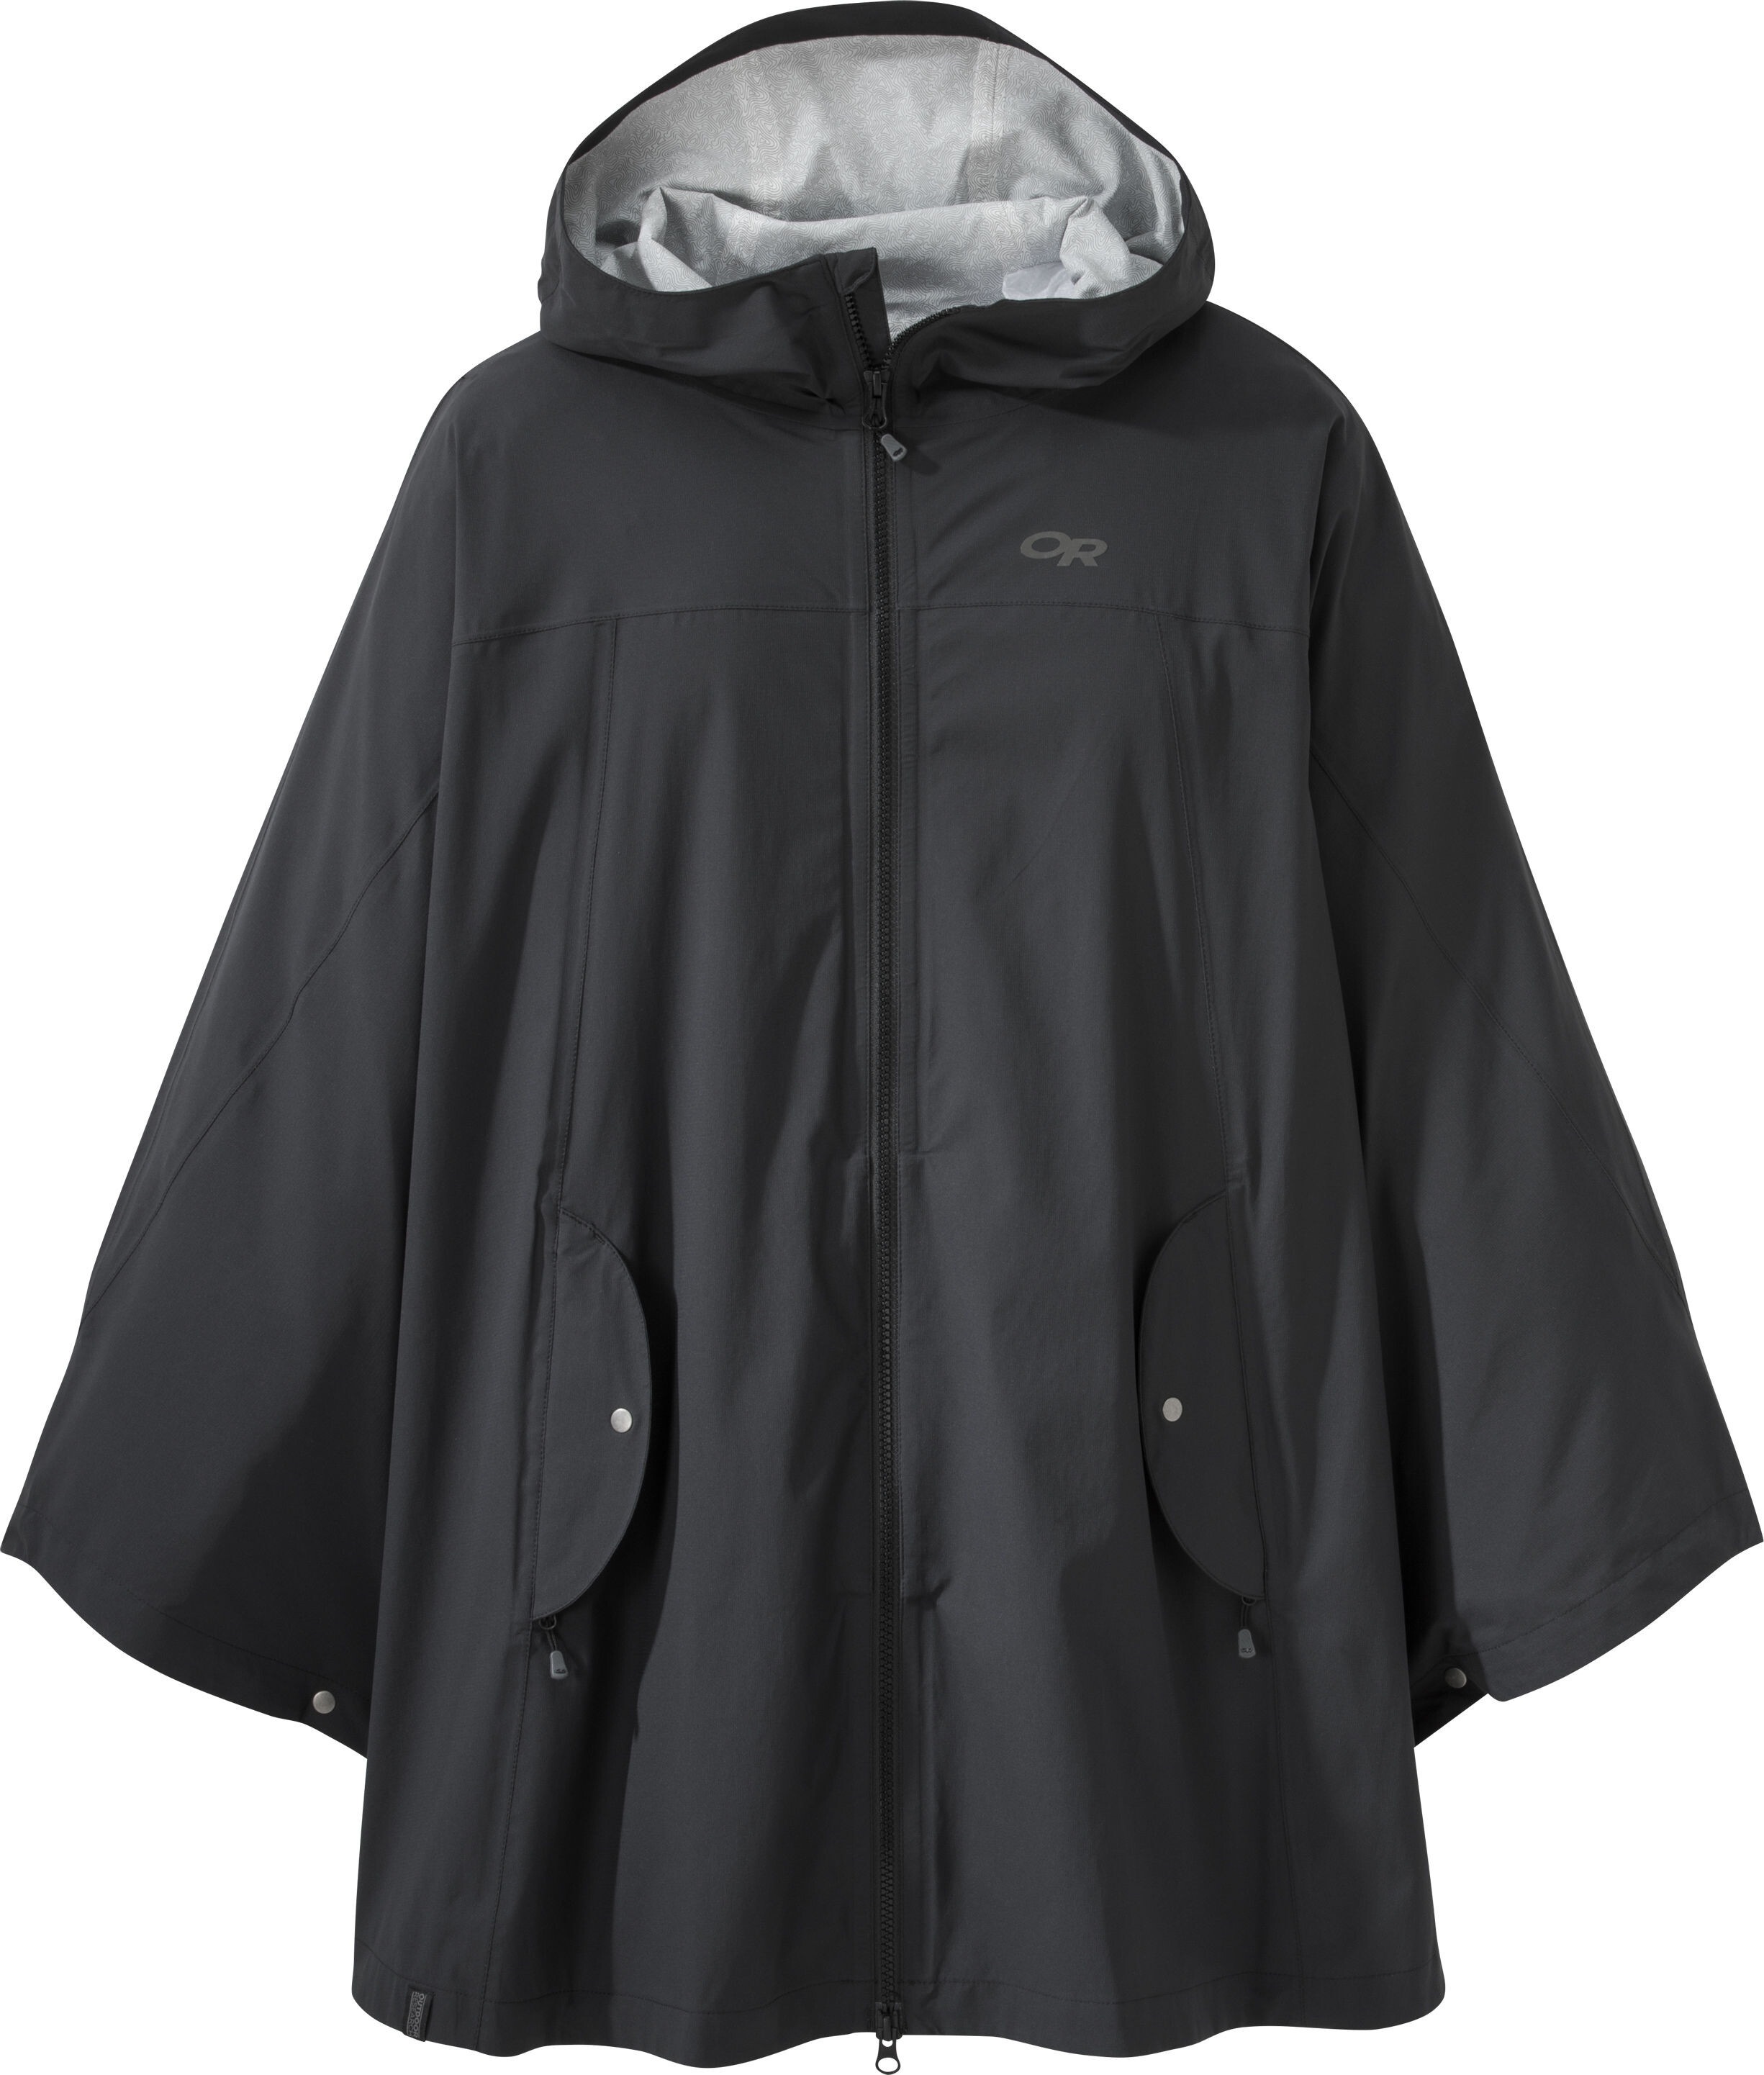 7843edad Outdoor Research W's Panorama Point Poncho Black   Gode tilbud hos ...